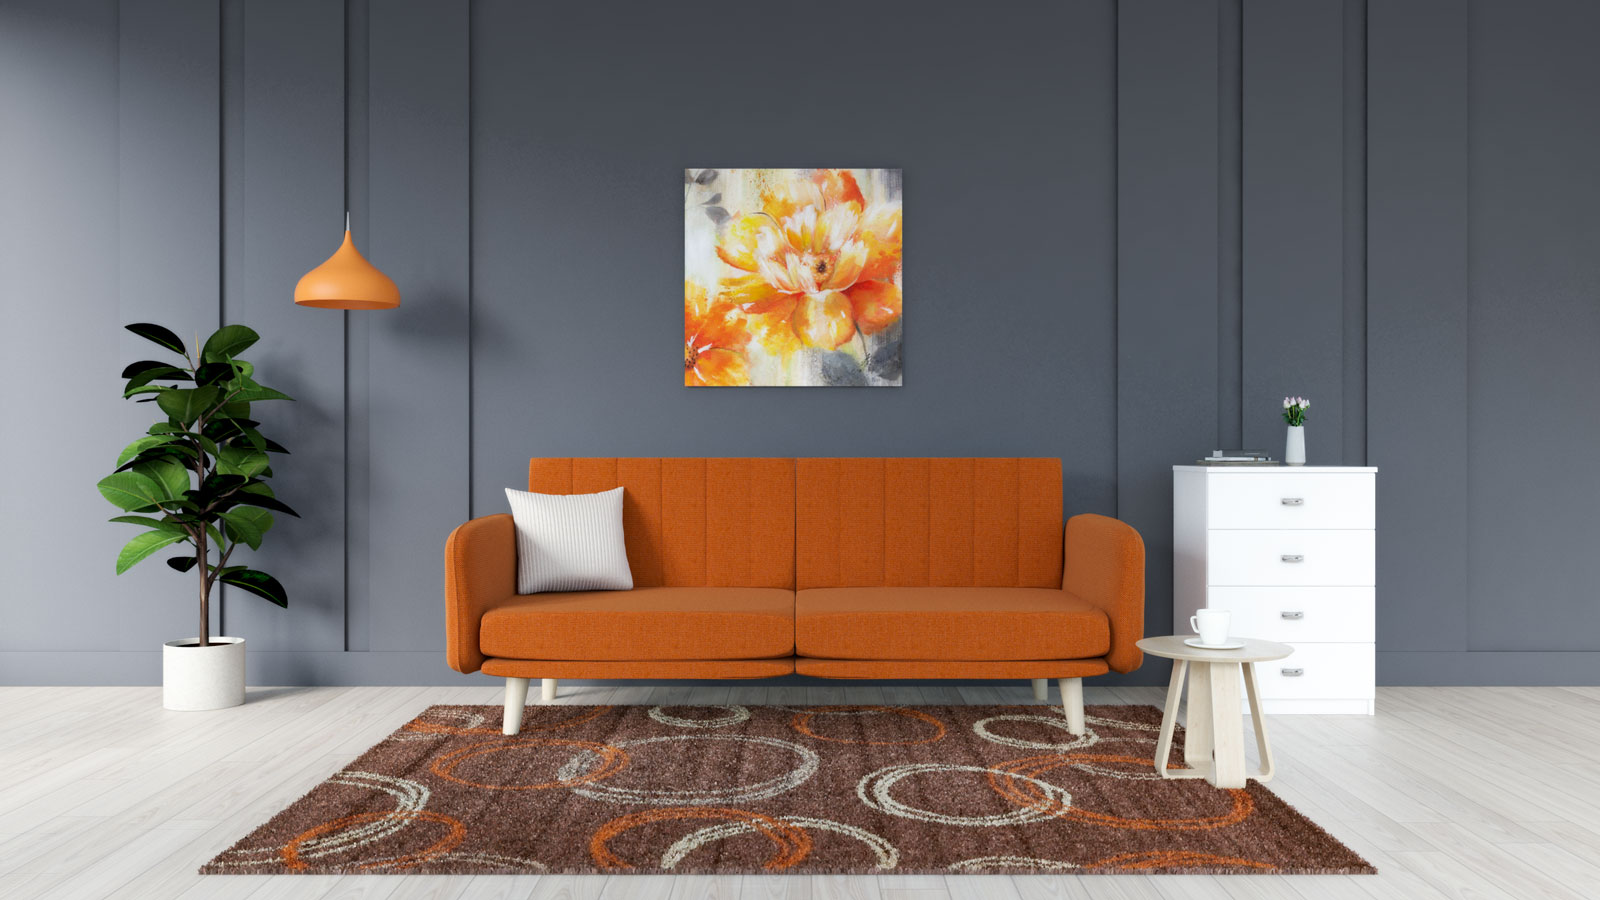 Orange and brown rug with orange couch